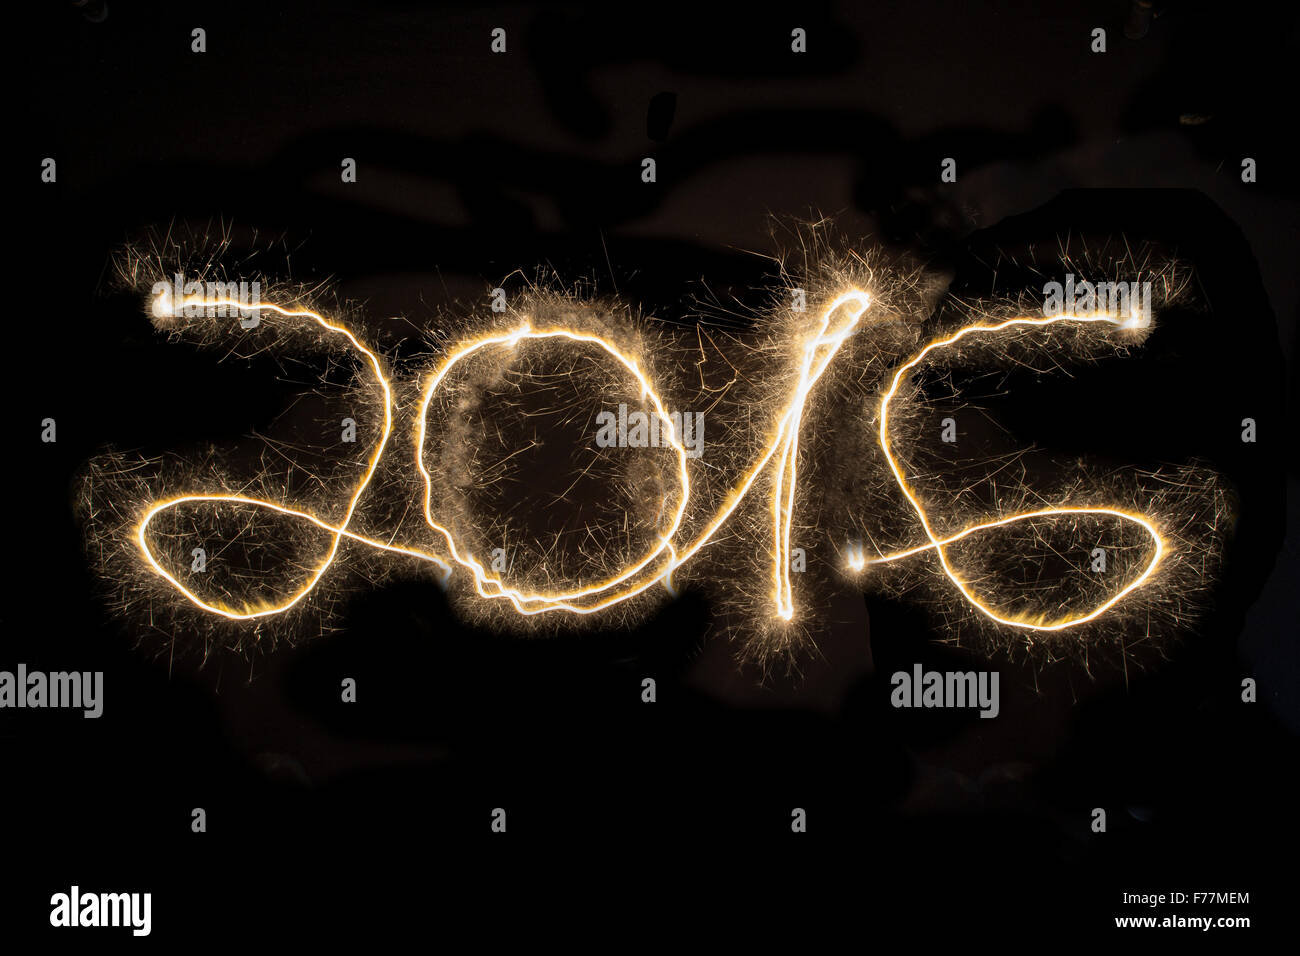 2016, New Year's Eve, Light painting, Black Background, New Year, Neujahr, Sylvester, Jahreswechsel, - Stock Image